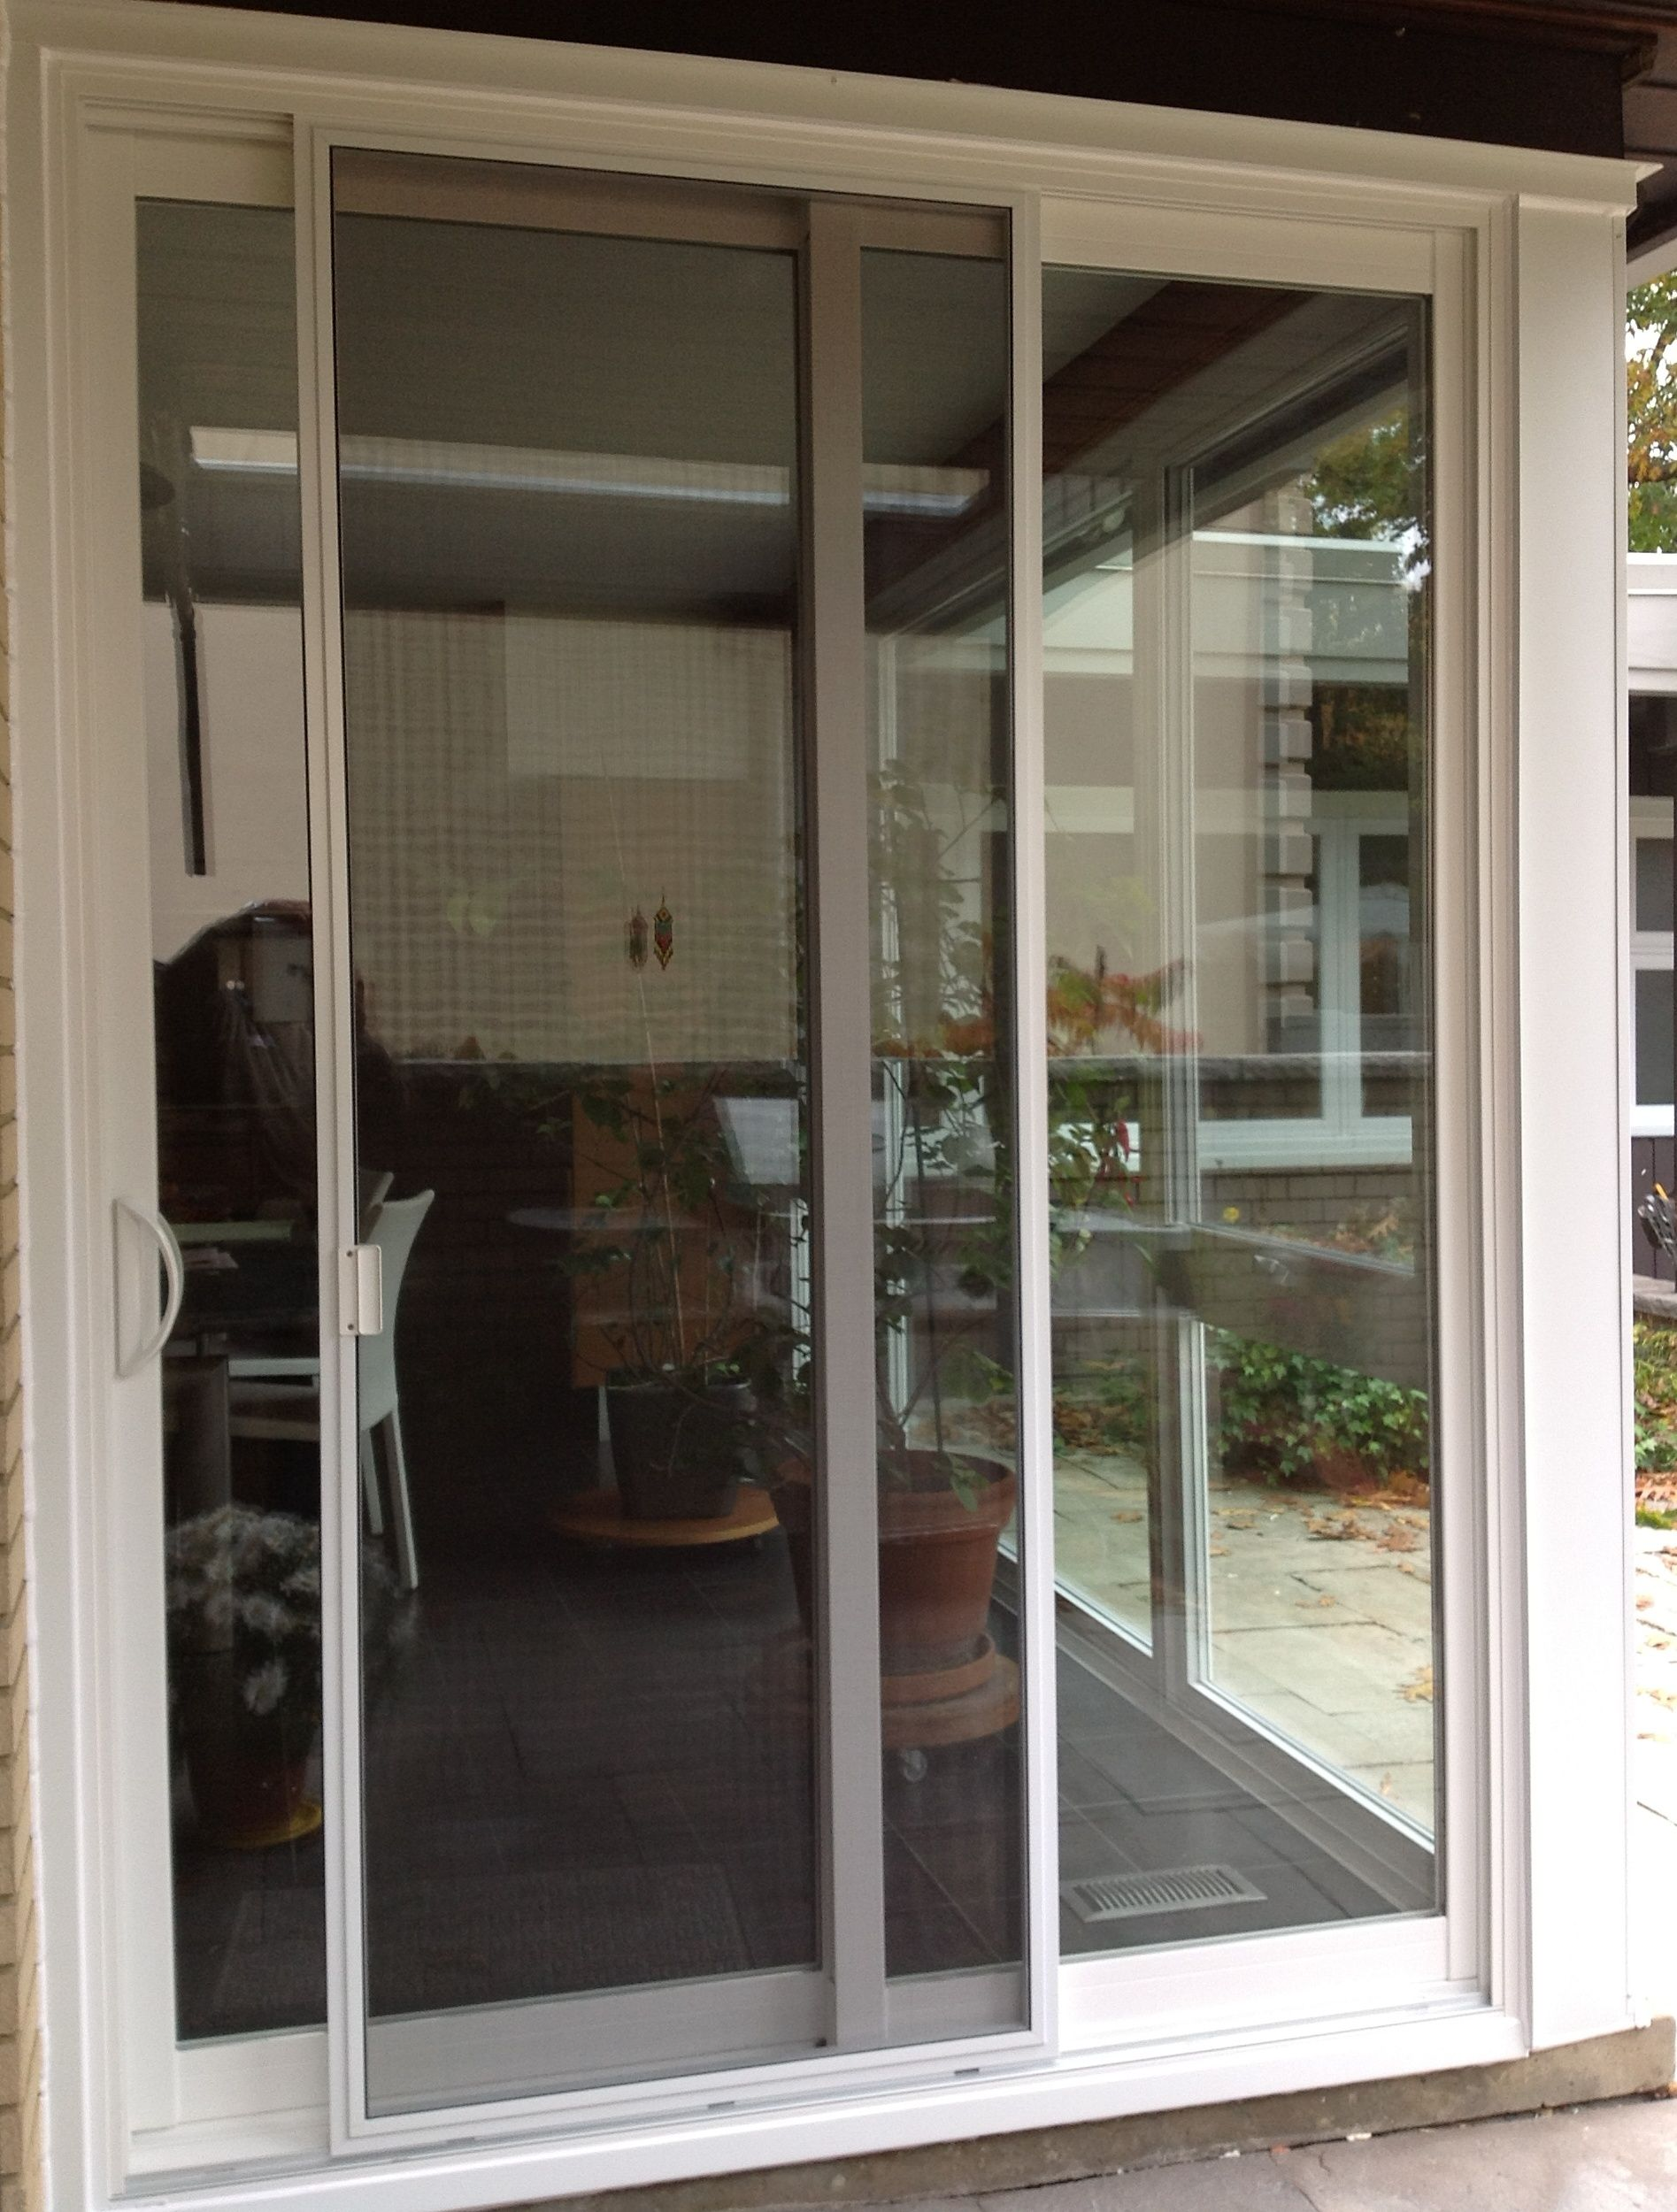 Sliding Screen Door For Apartment Balcony Sliding Glass Doors